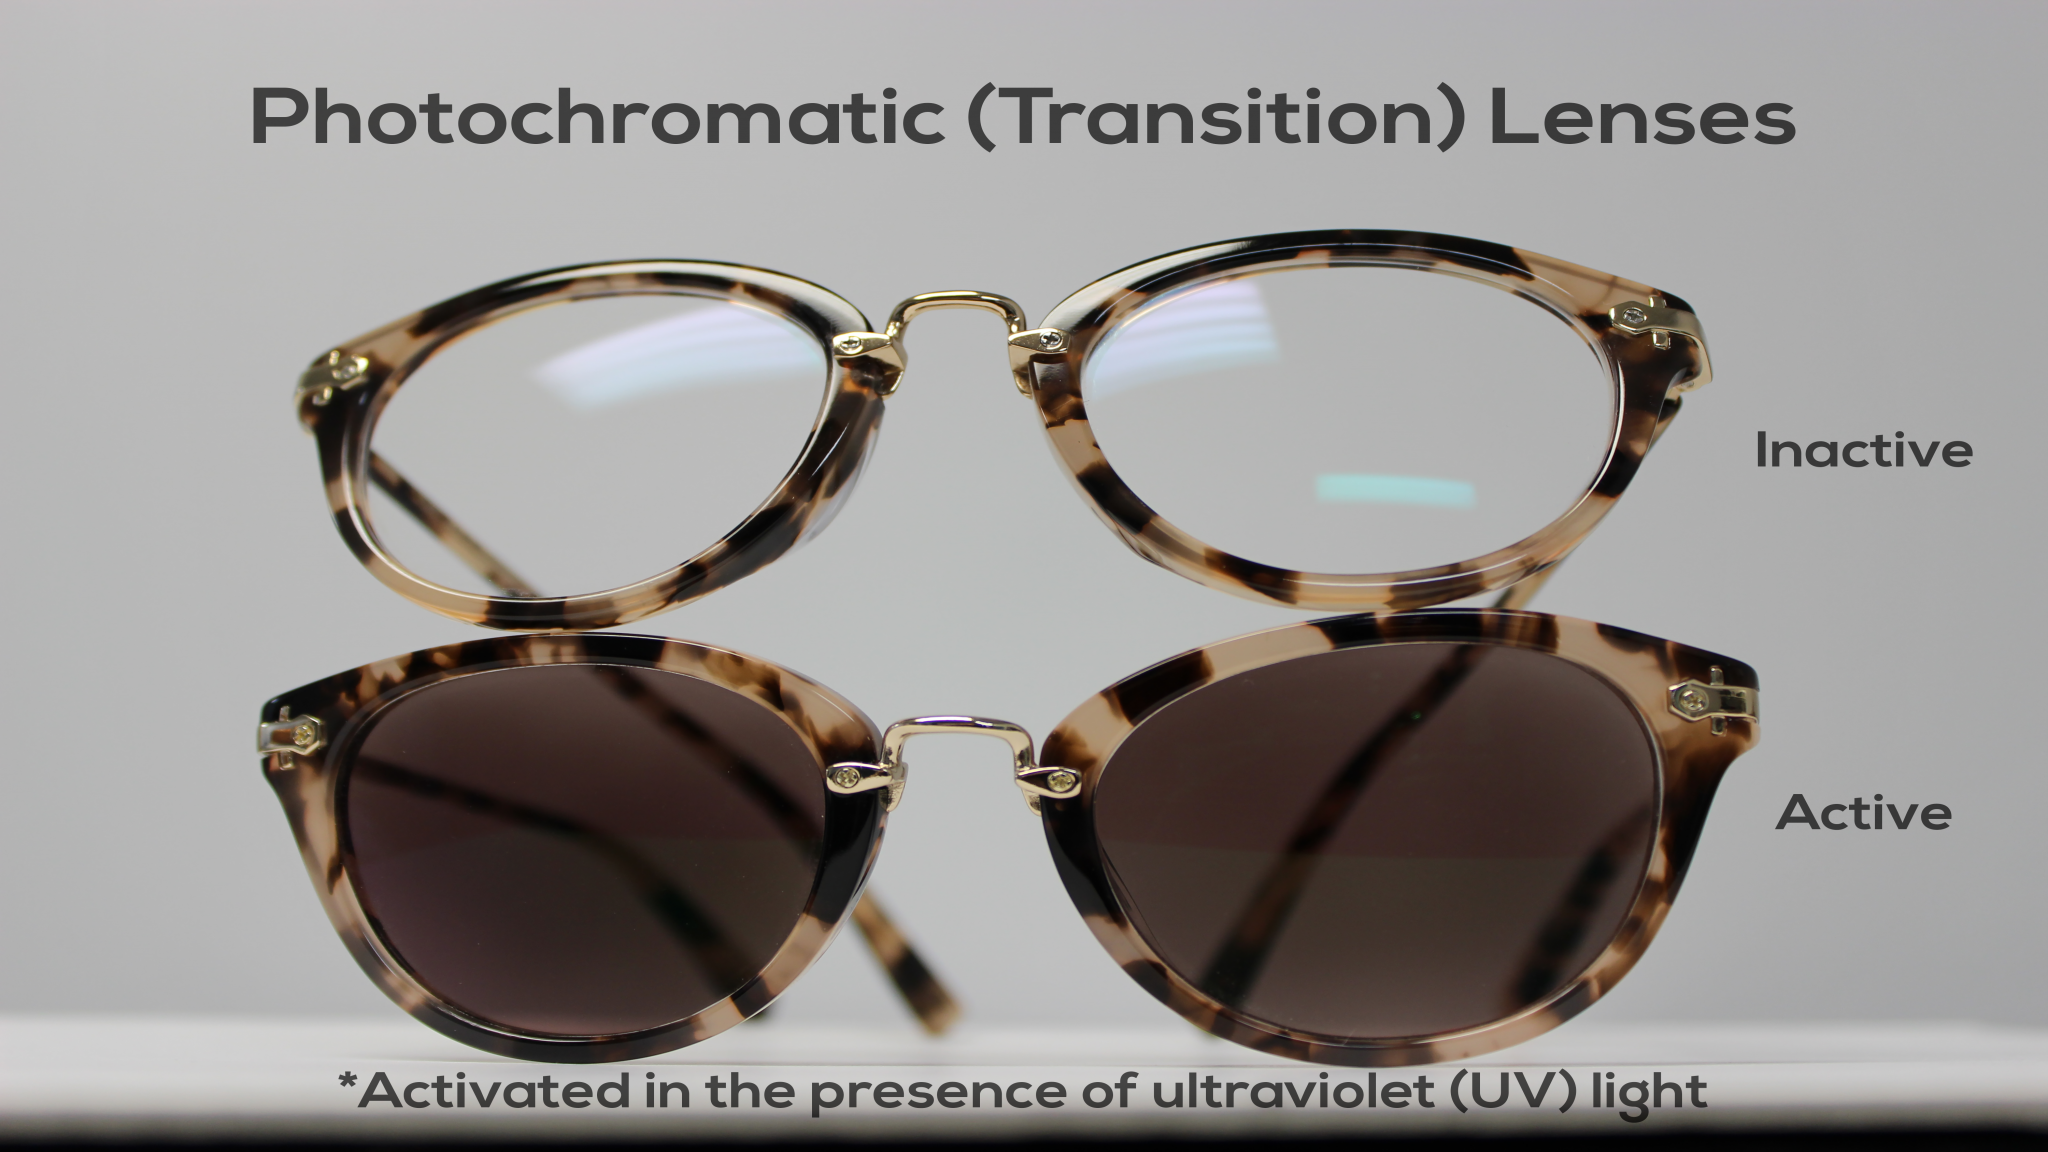 139c69c961e5 Designed as lenses that turn dark like sunglasses in the presence of  (ultraviolet) sunlight